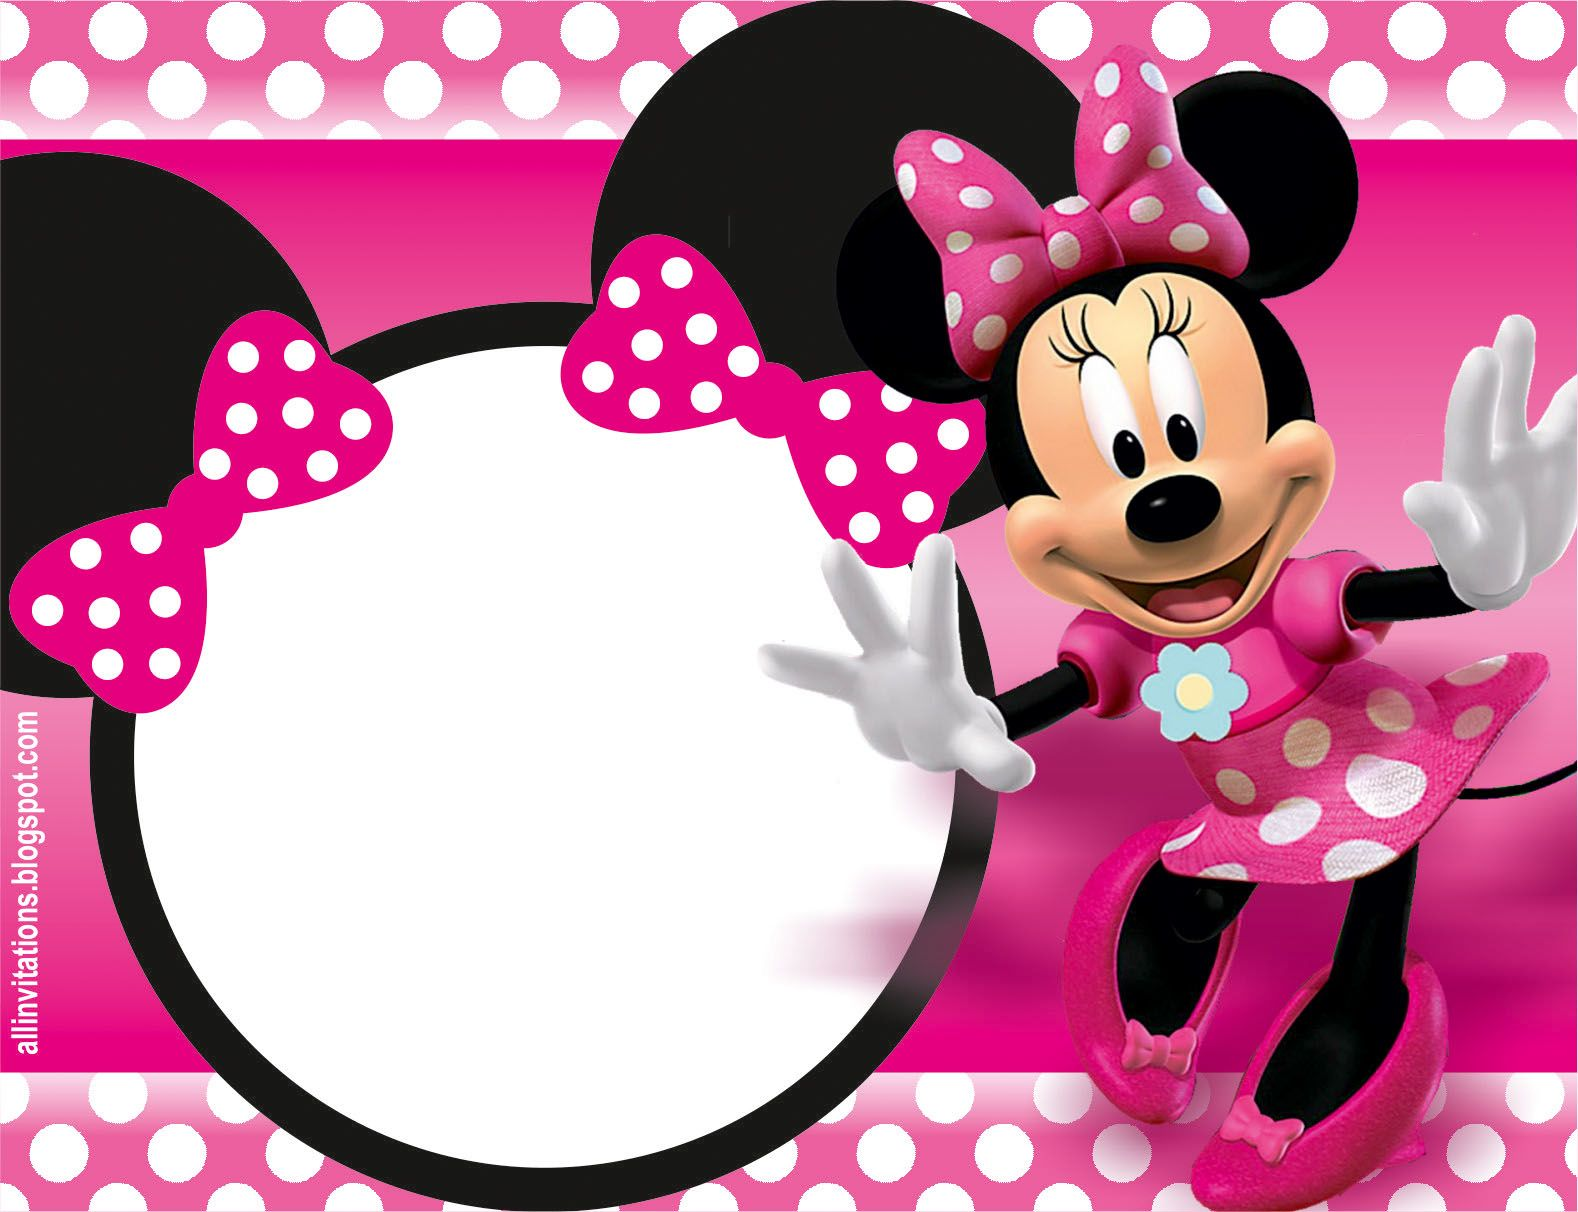 U R Invited To Lebogang 1st B Day Party Mini Mouse Pinterest